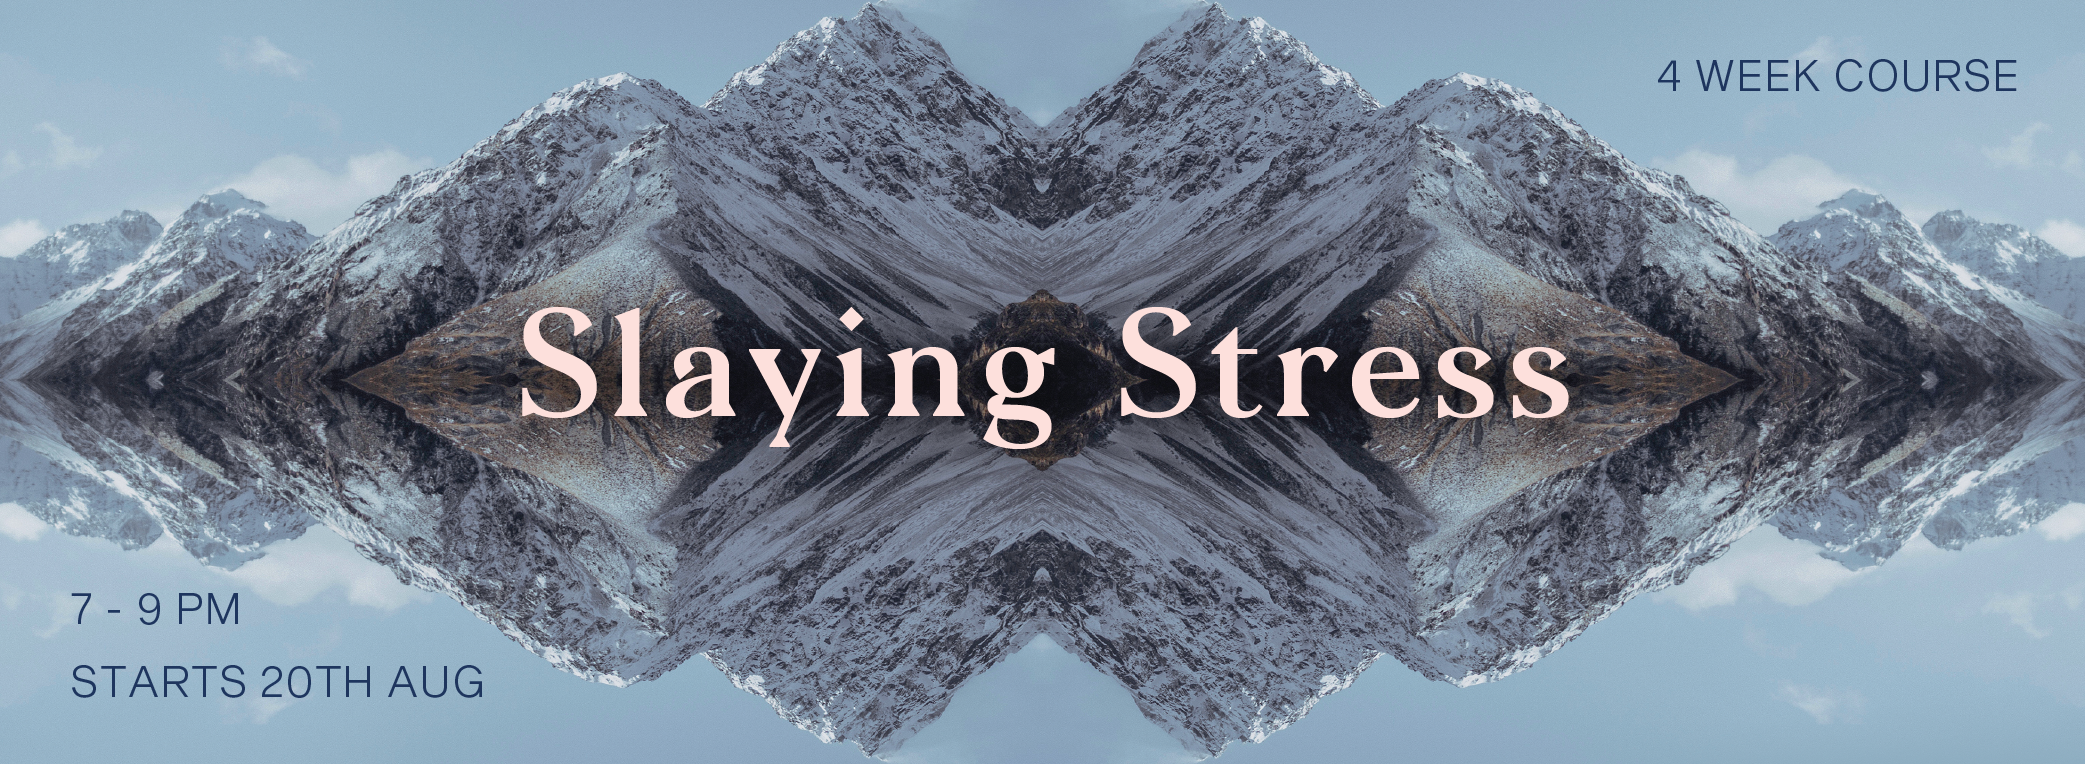 SLAYING STRESS_Web Header